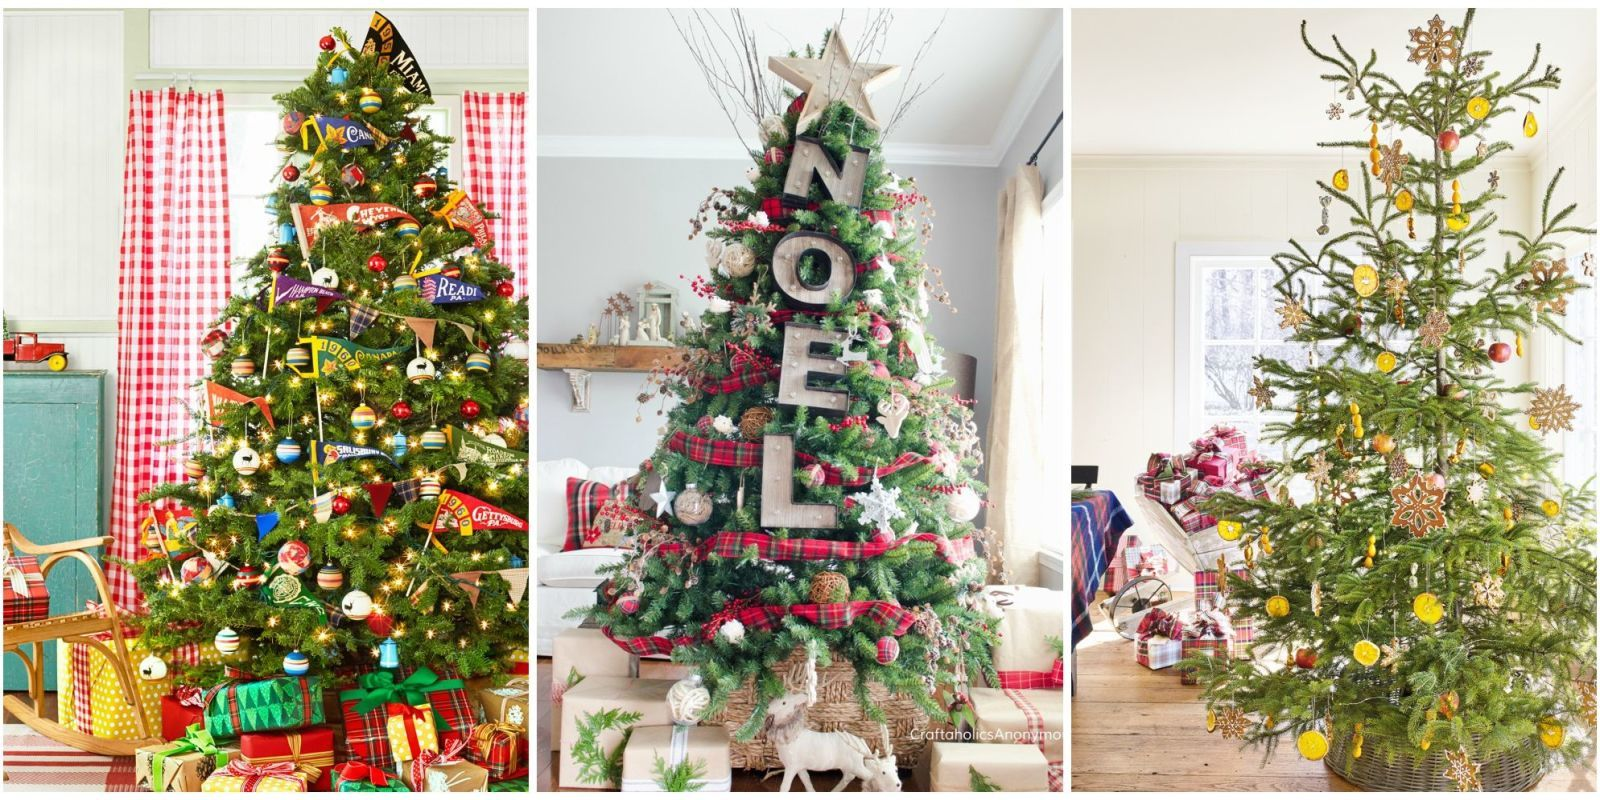 Wonderful Whether Your Tree At Home Is Real Or Artificial, Youu0027ll Find Inspiration  For Decorating The Centerpiece Of Your Holiday Home.